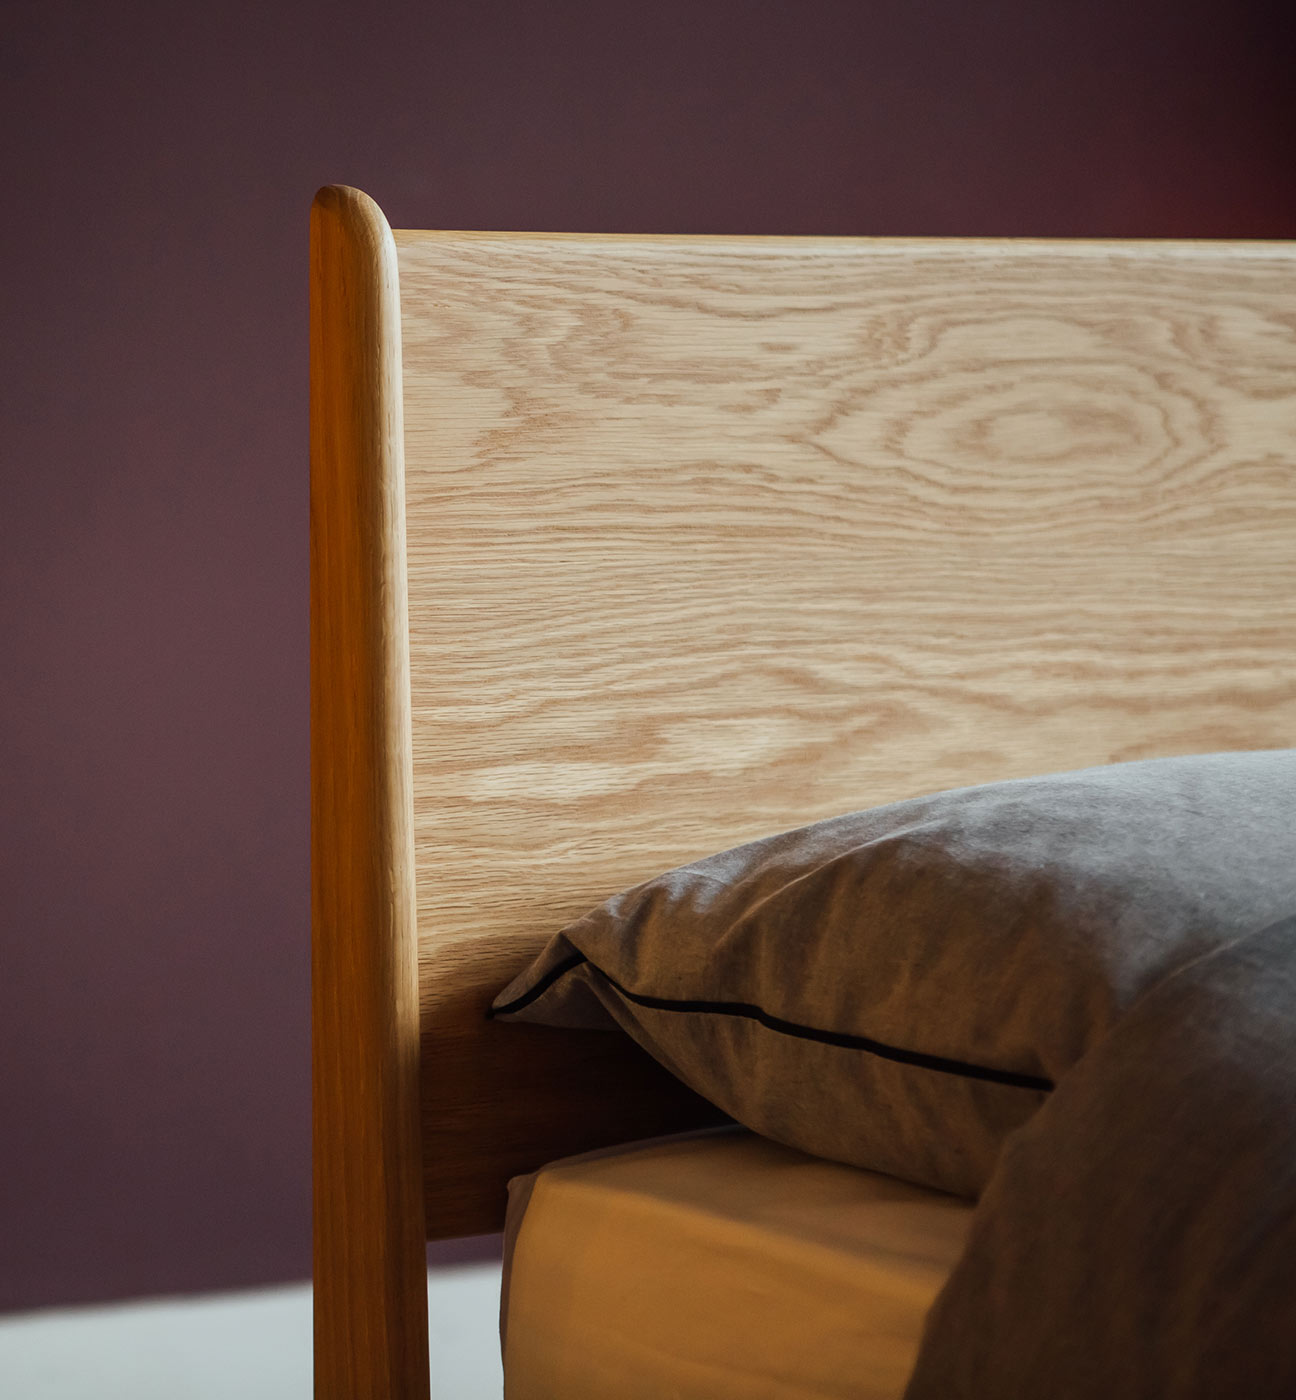 The Camden bed headboard has an elegant slender curve hand made from solid wood